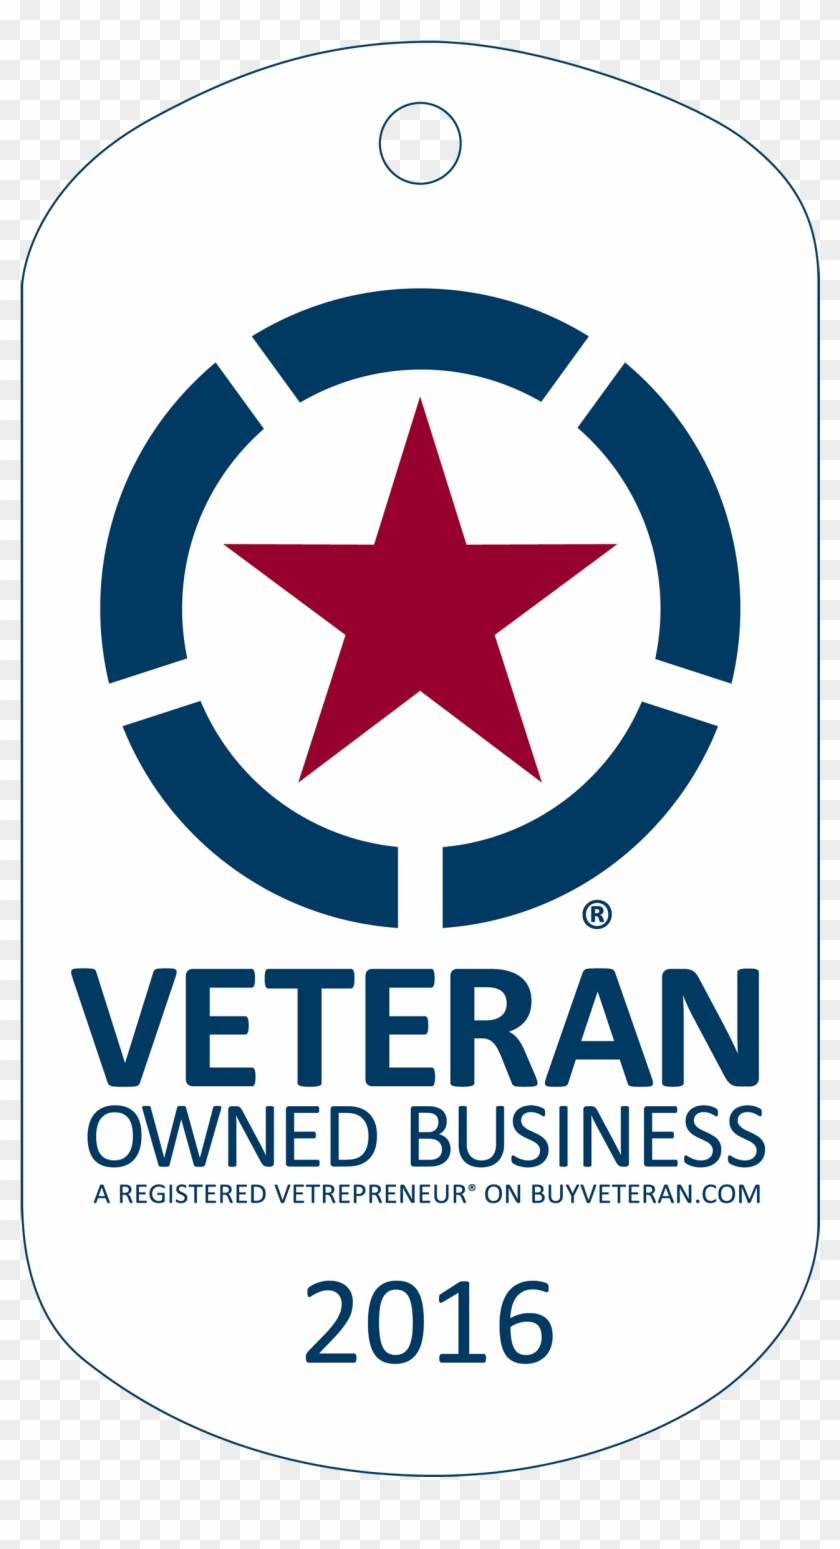 How Does It Work - Service-disabled Veteran-owned Small